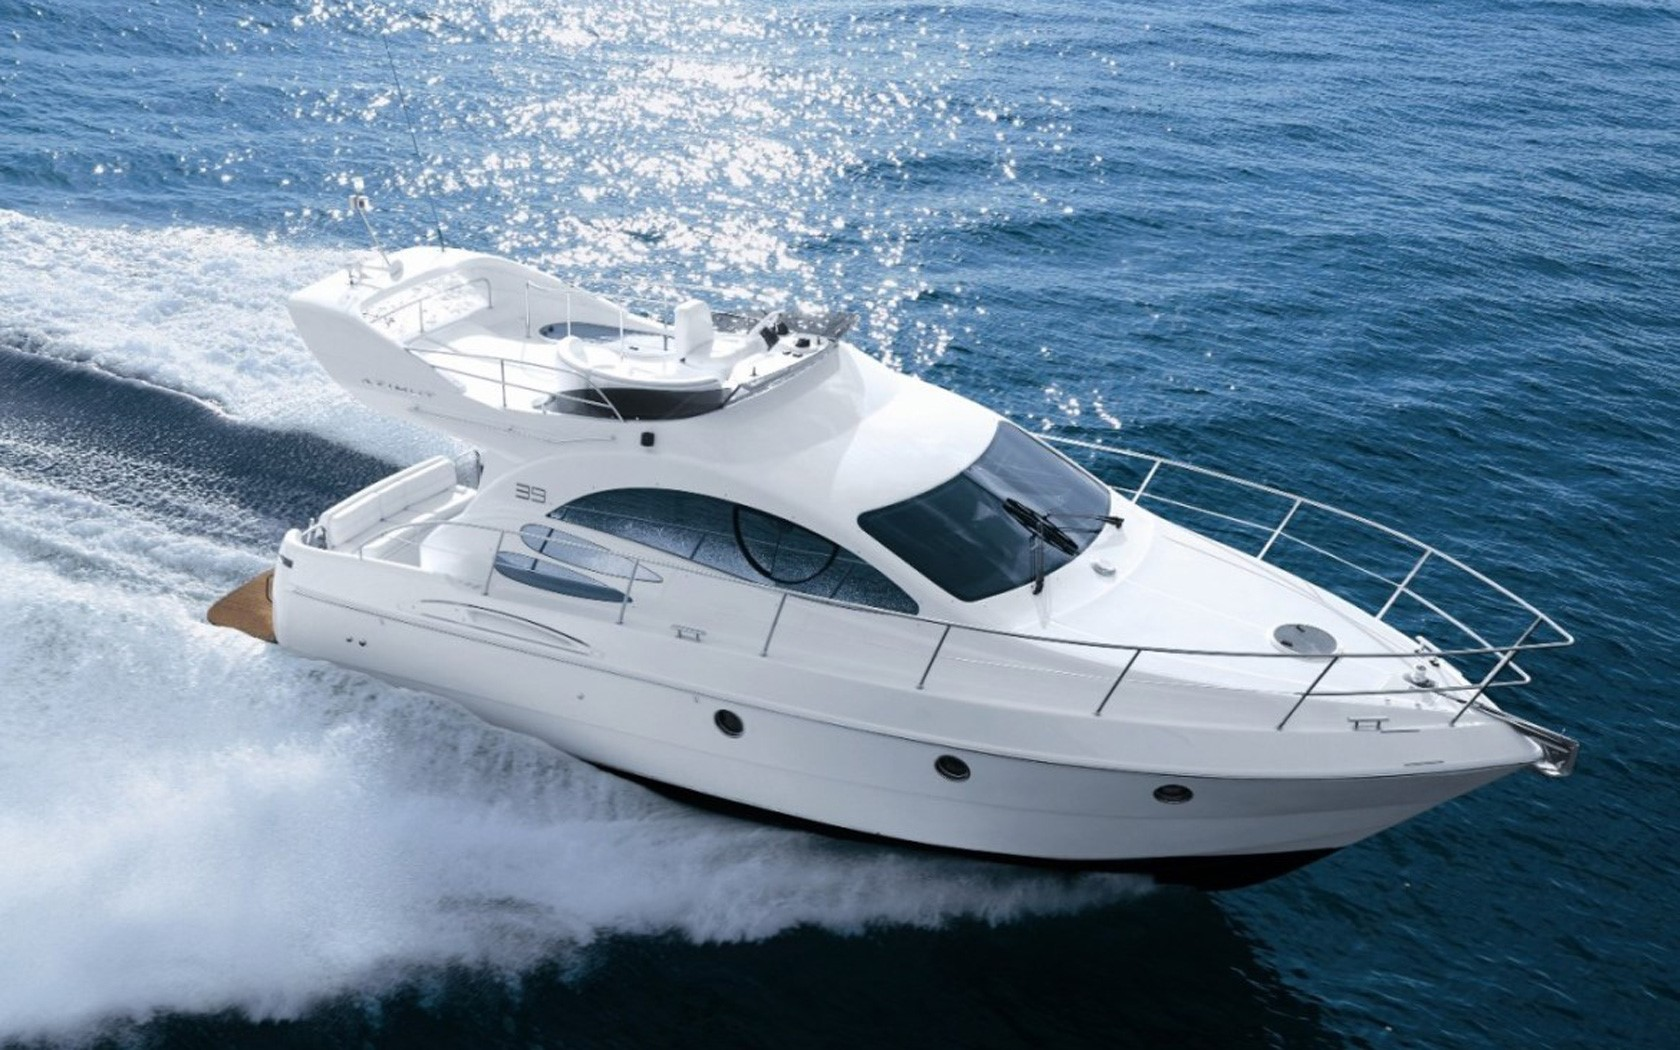 Azimut 39 Azimut 39 - For Sale